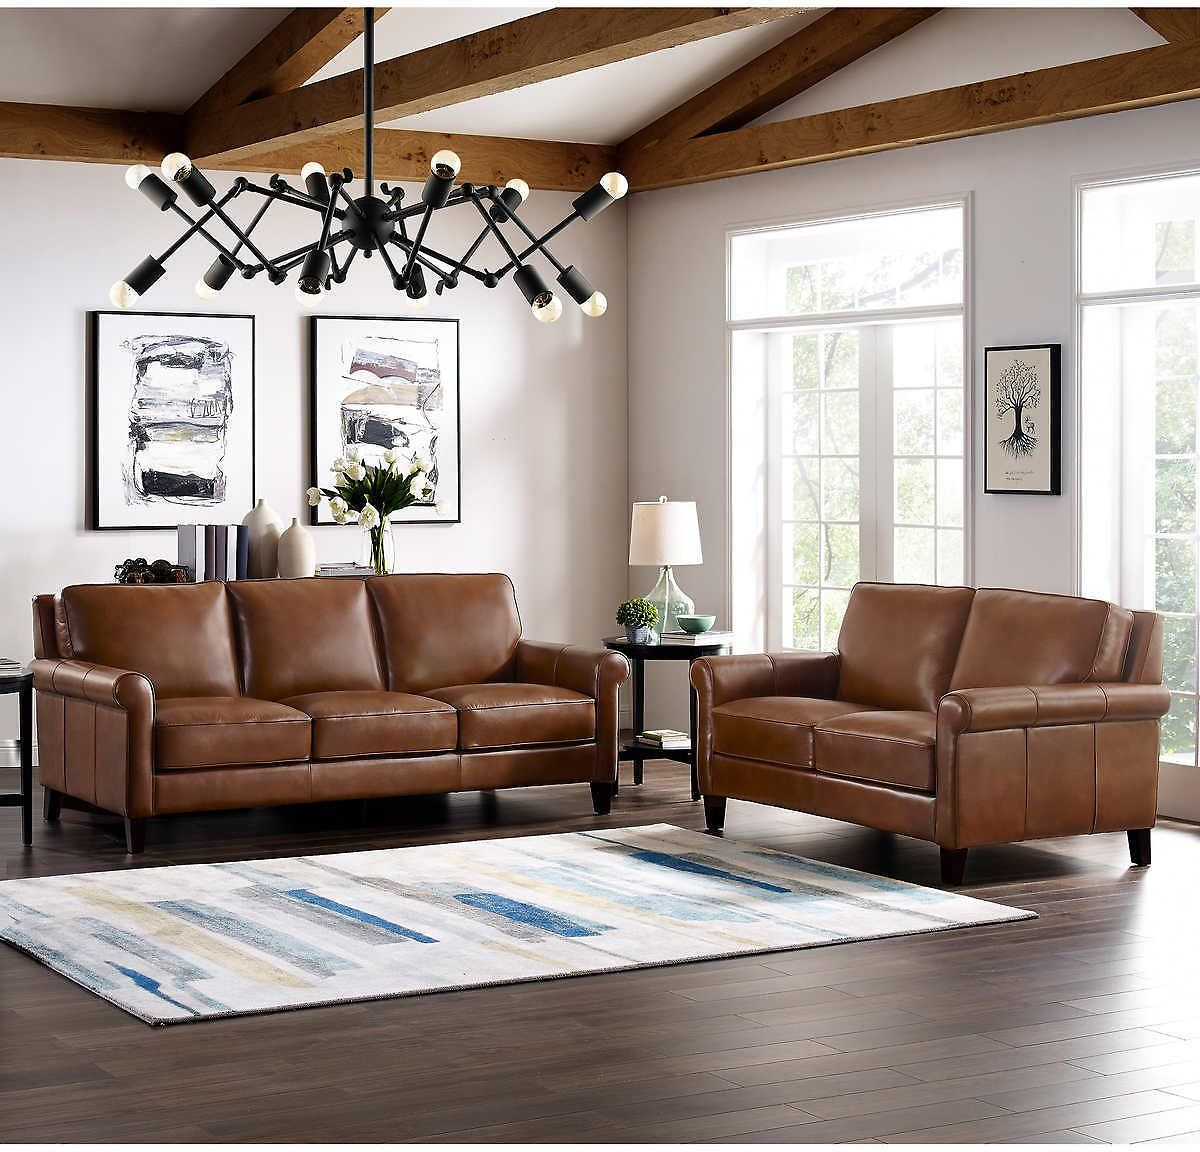 up to 1 600 off costco furniture event